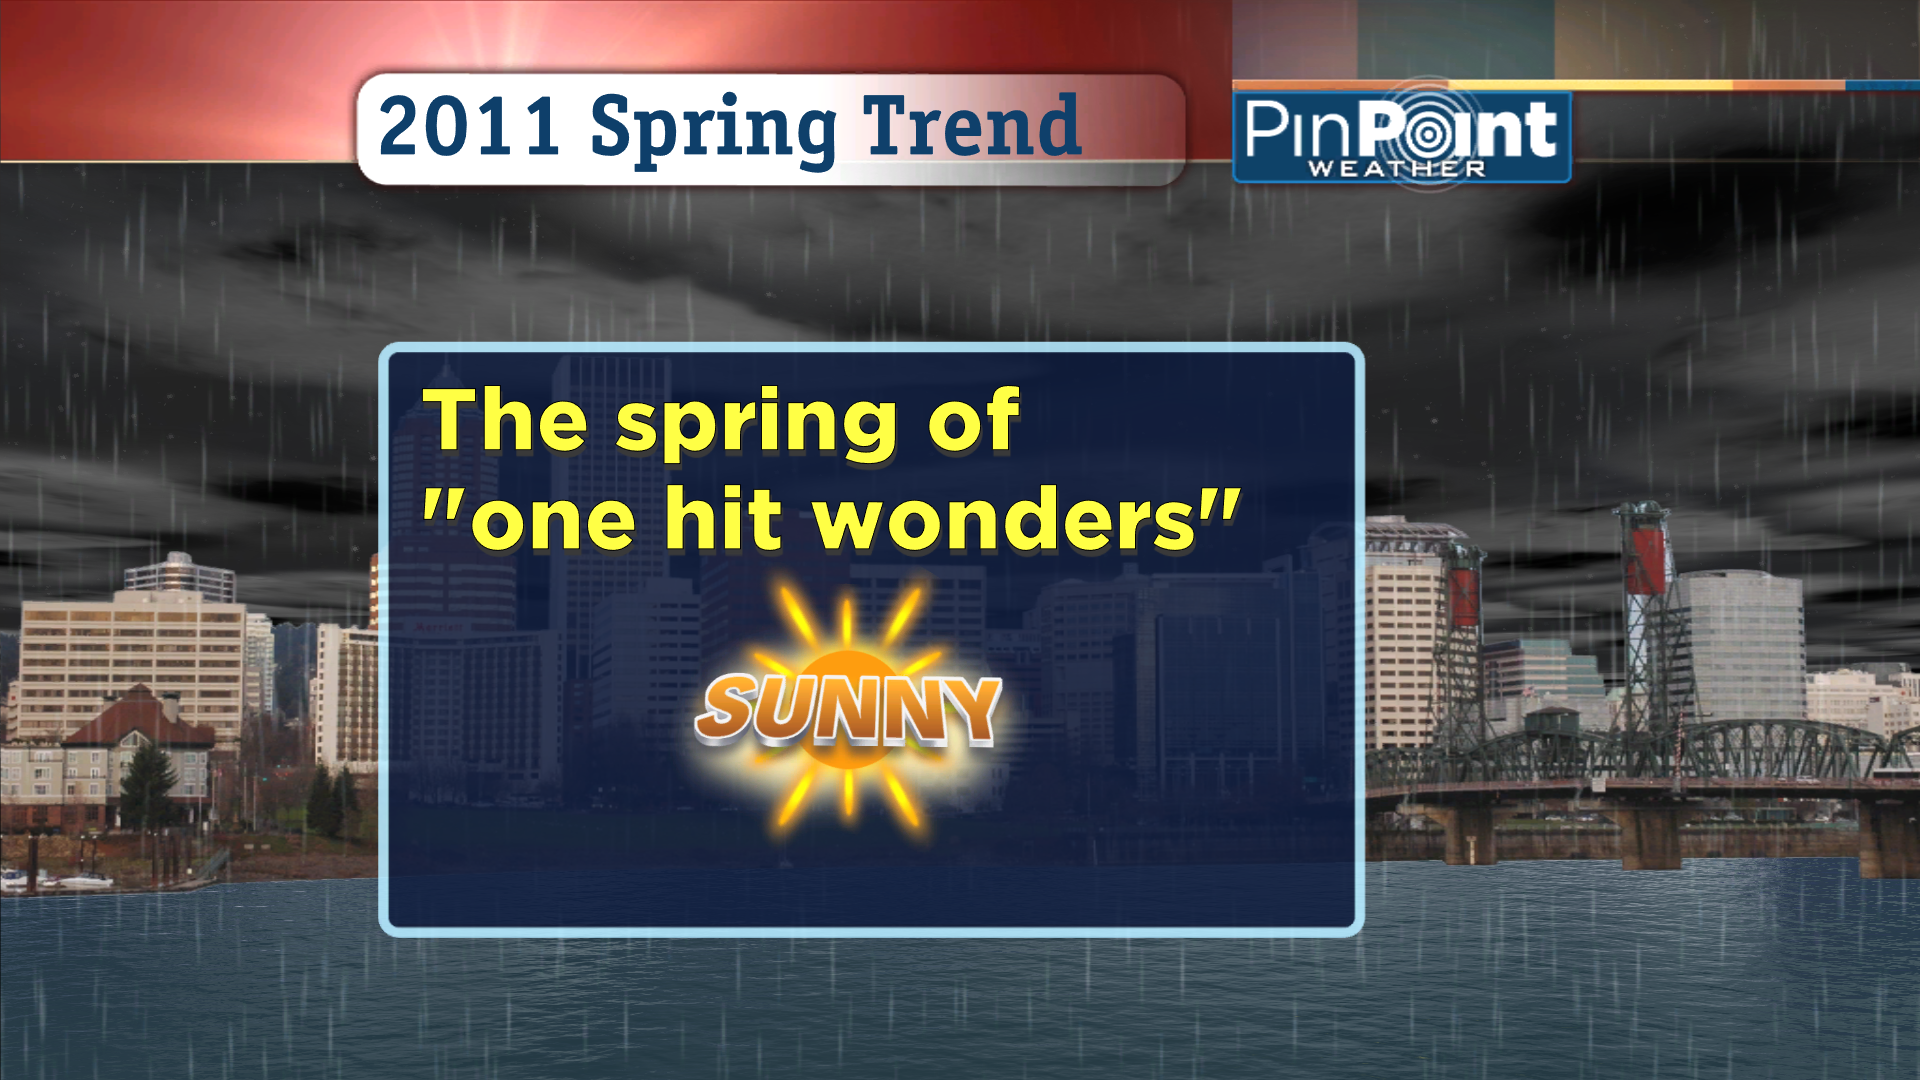 Spring Trend Appearing For The Pacific Northwest